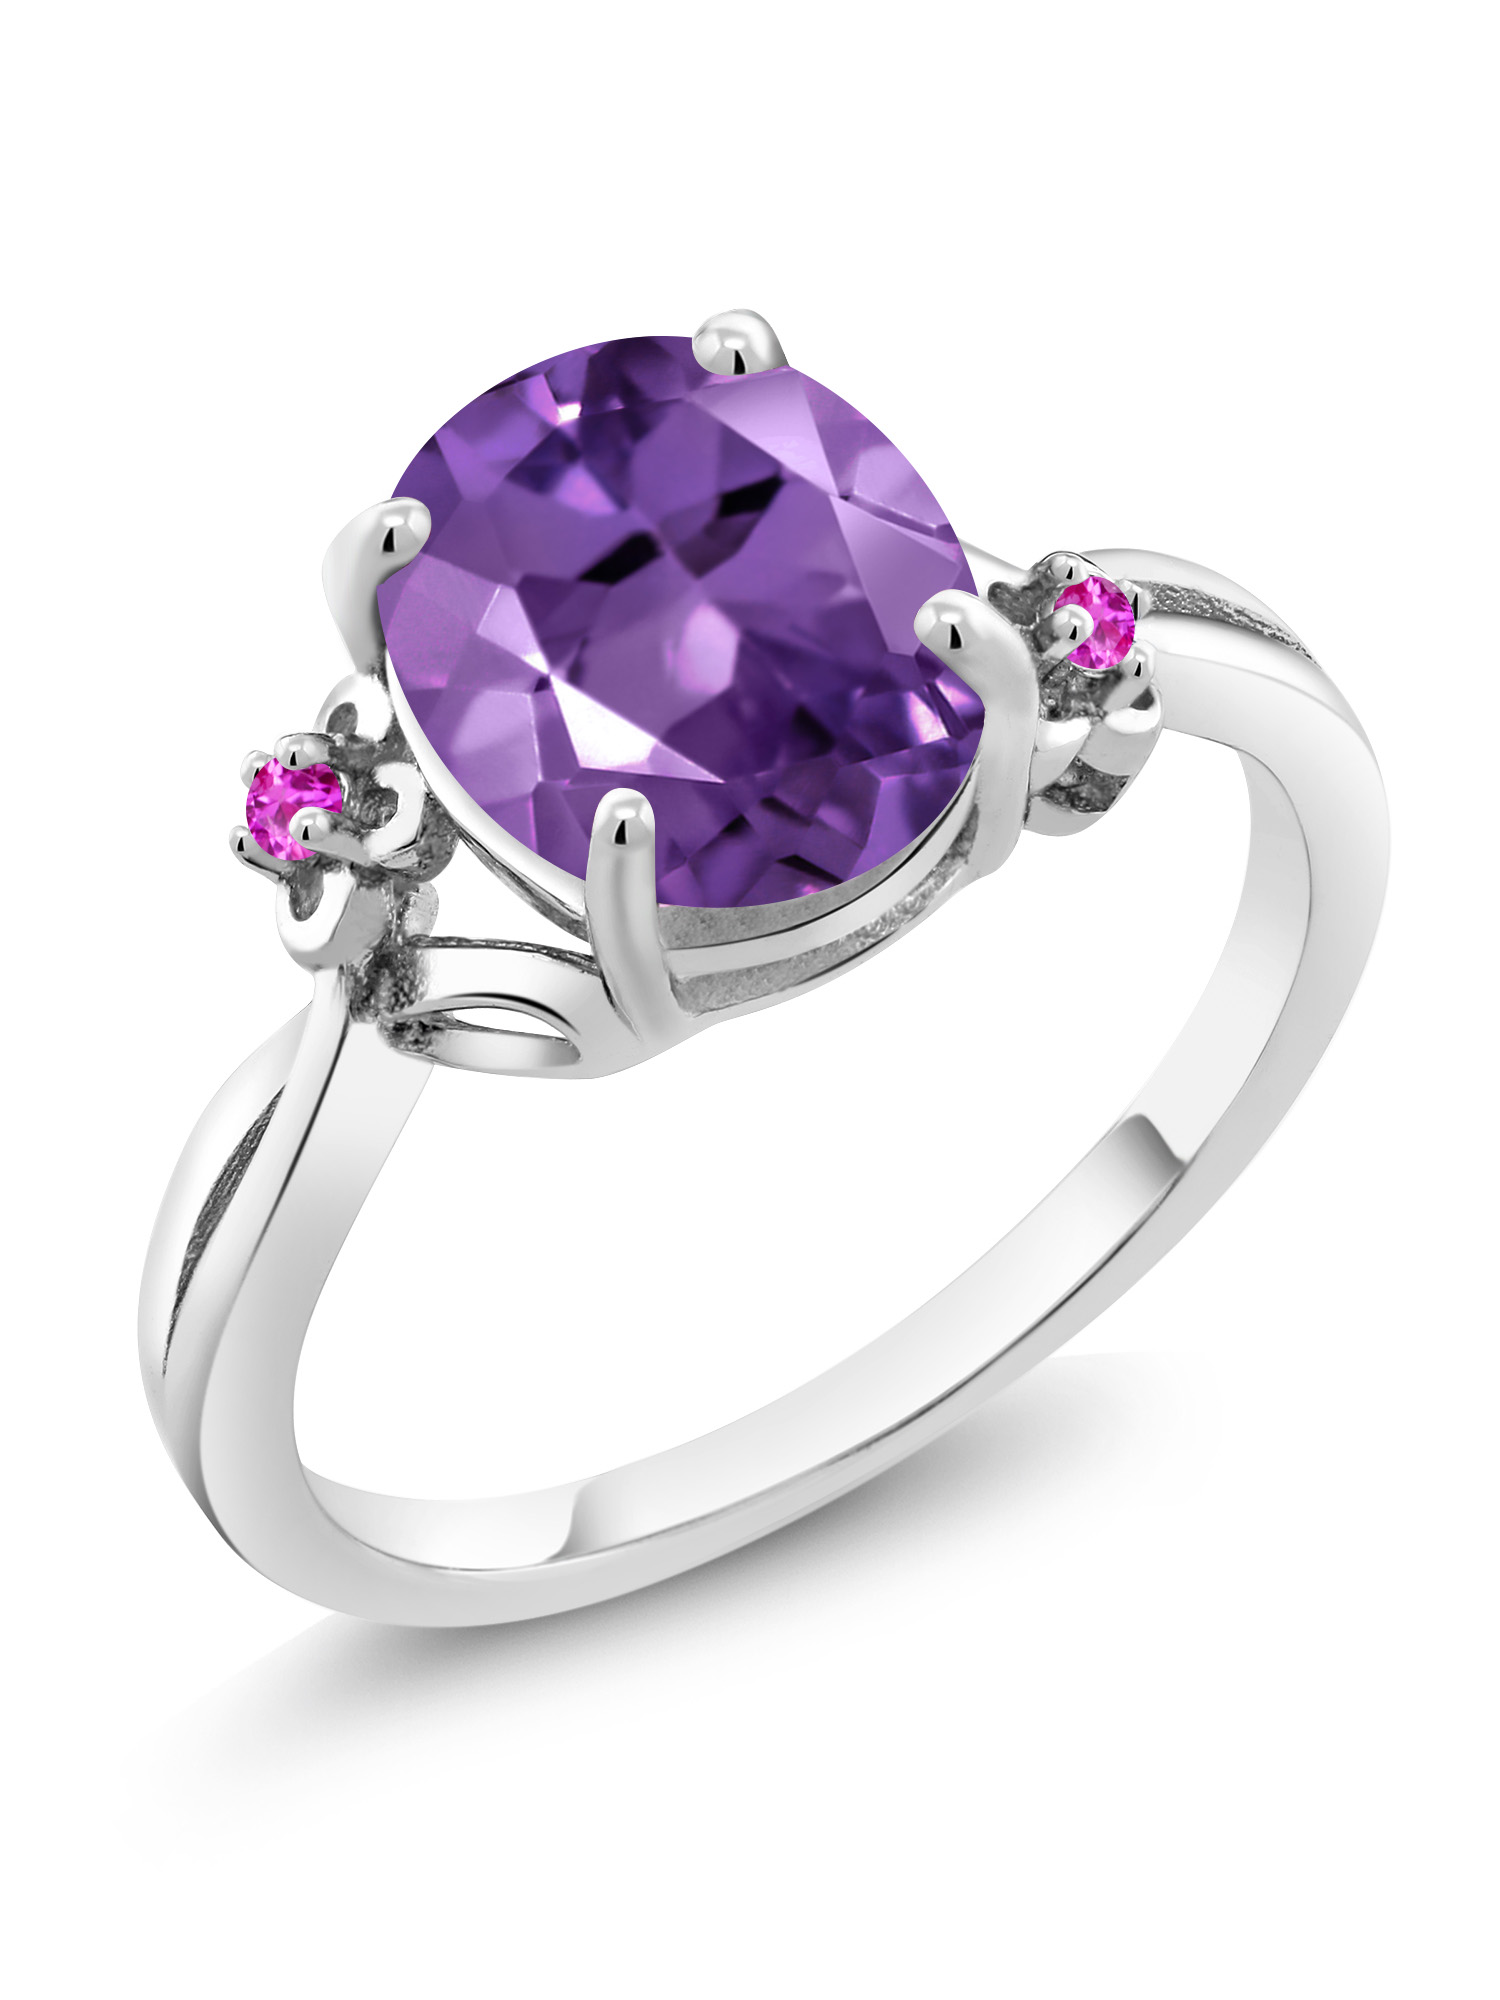 2.24 Ct Oval Purple Amethyst Pink Sapphire 925 Sterling Silver Ring by